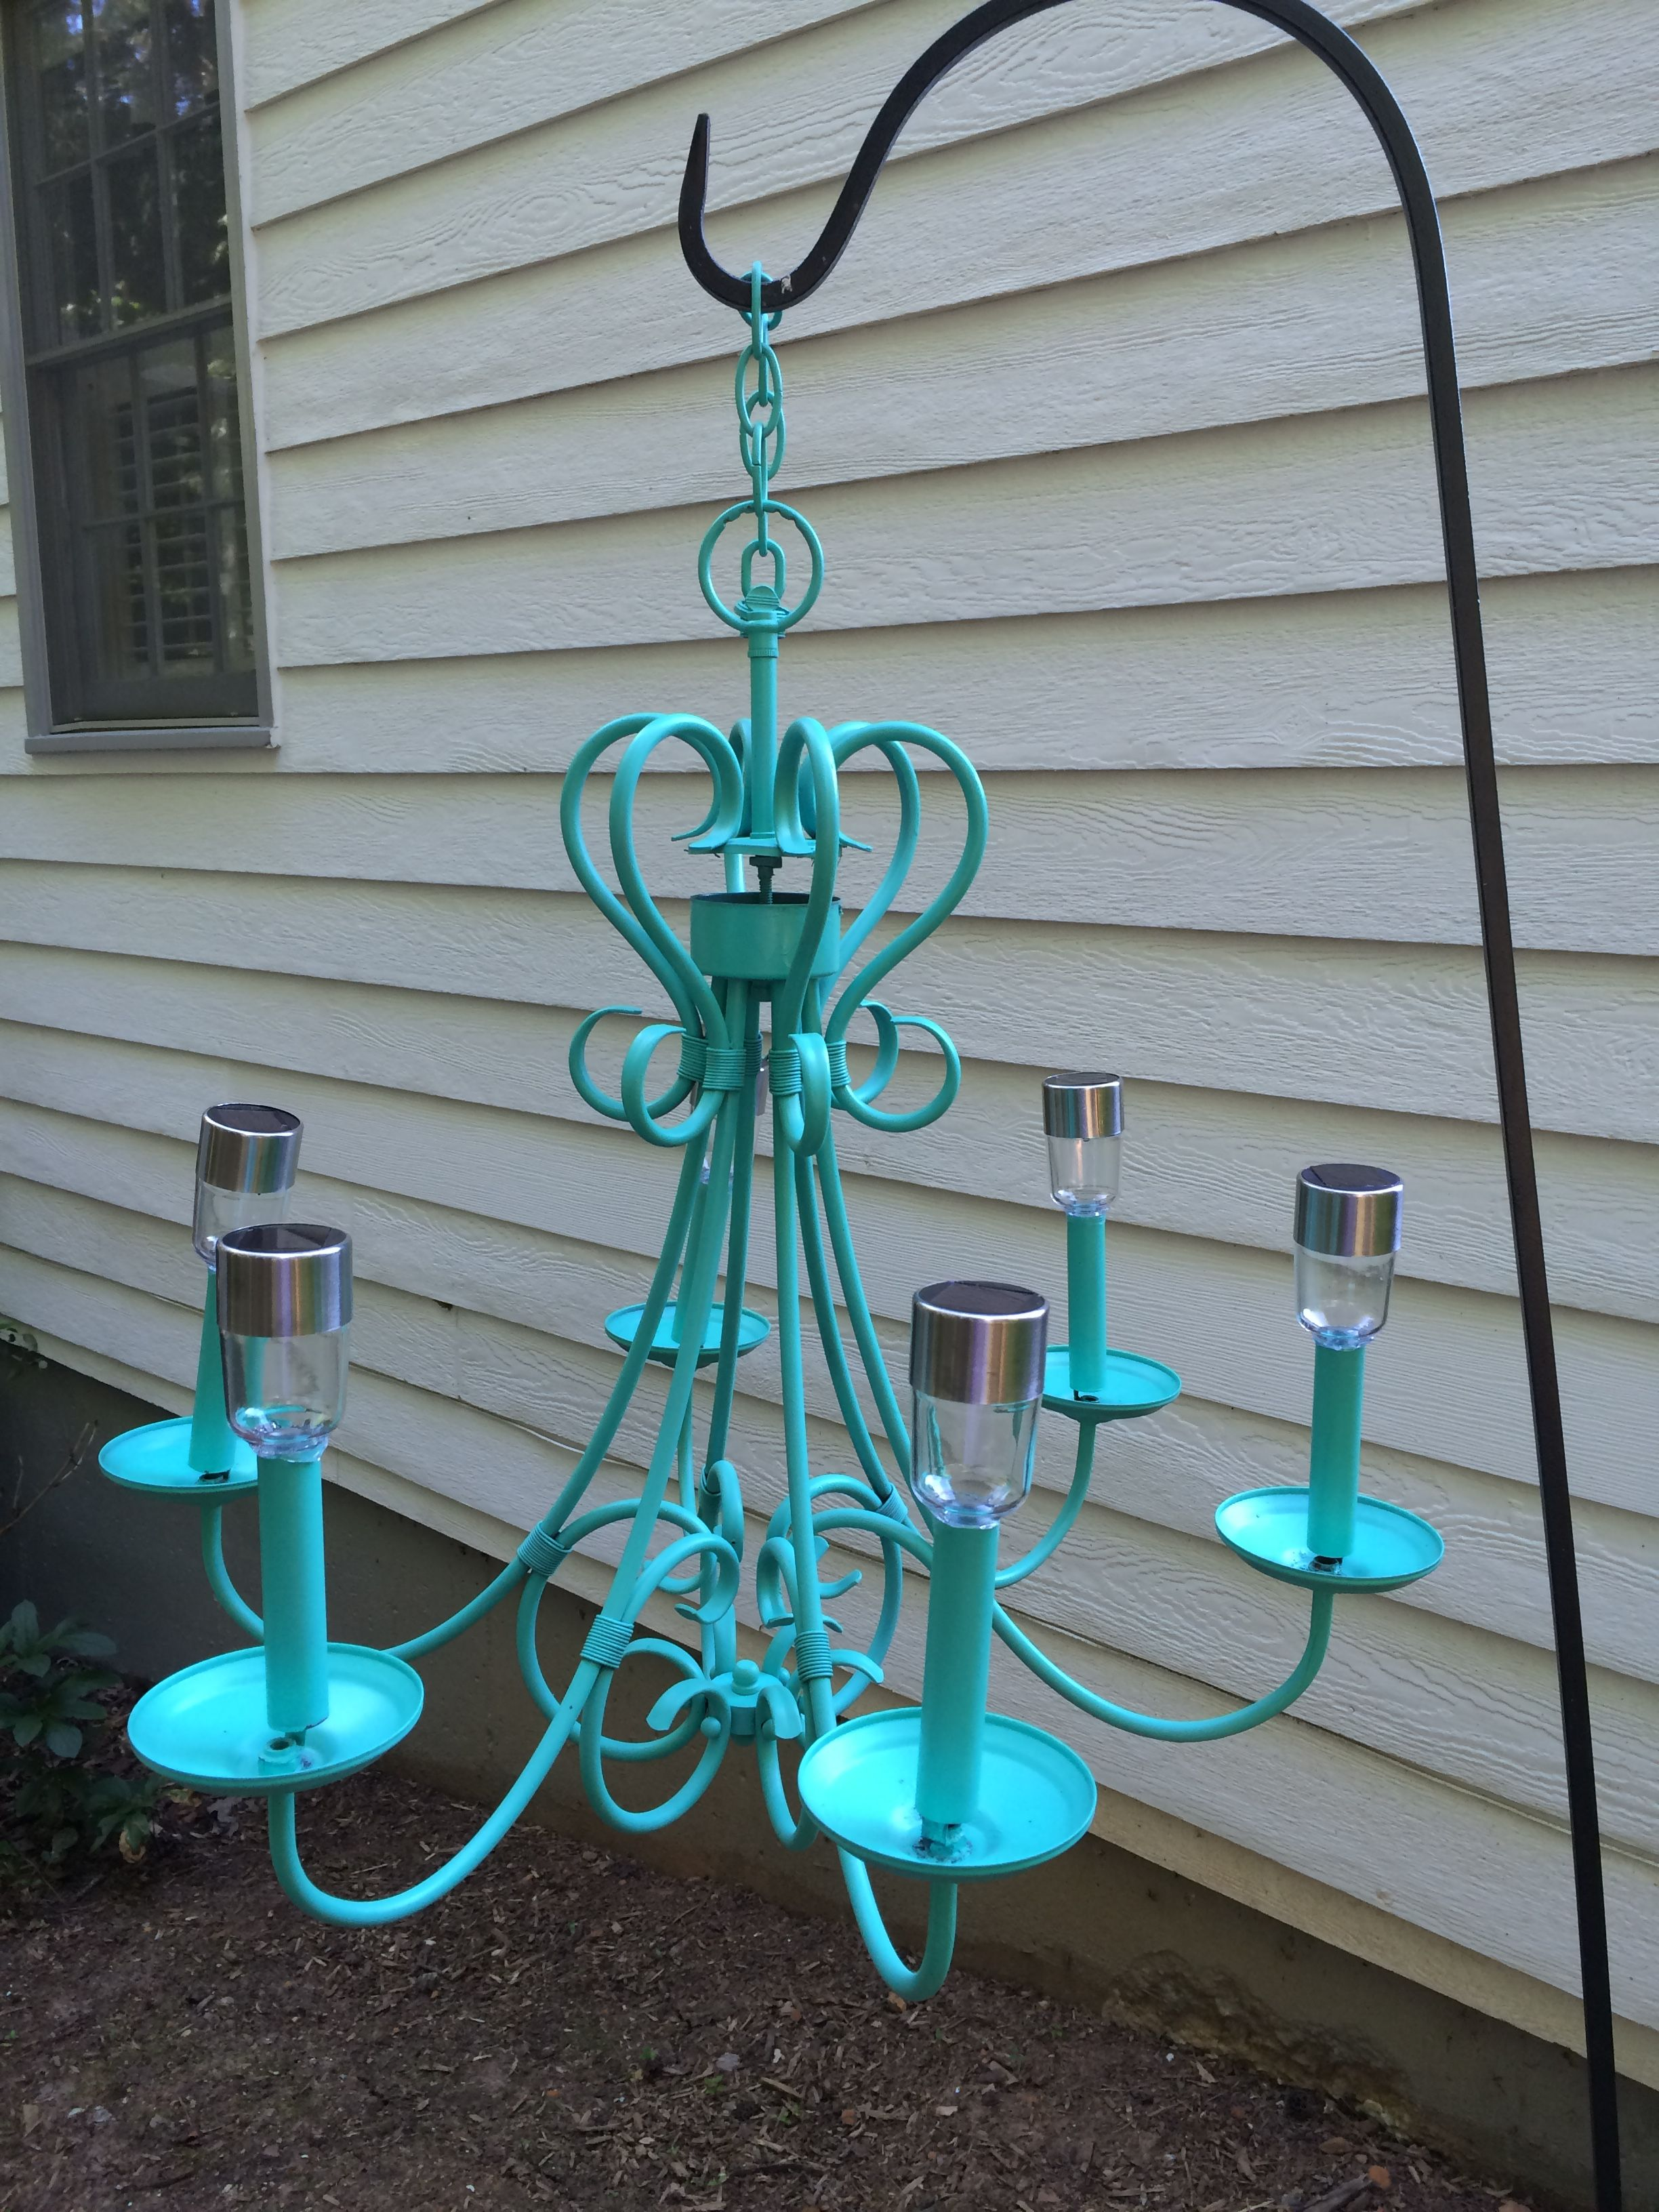 solar powered chandelier on outdoor solar chandelier bought an old rusty antique store chandelier and repainted glued in the tops solar light crafts solar chandelier cheap solar lights outdoor solar chandelier bought an